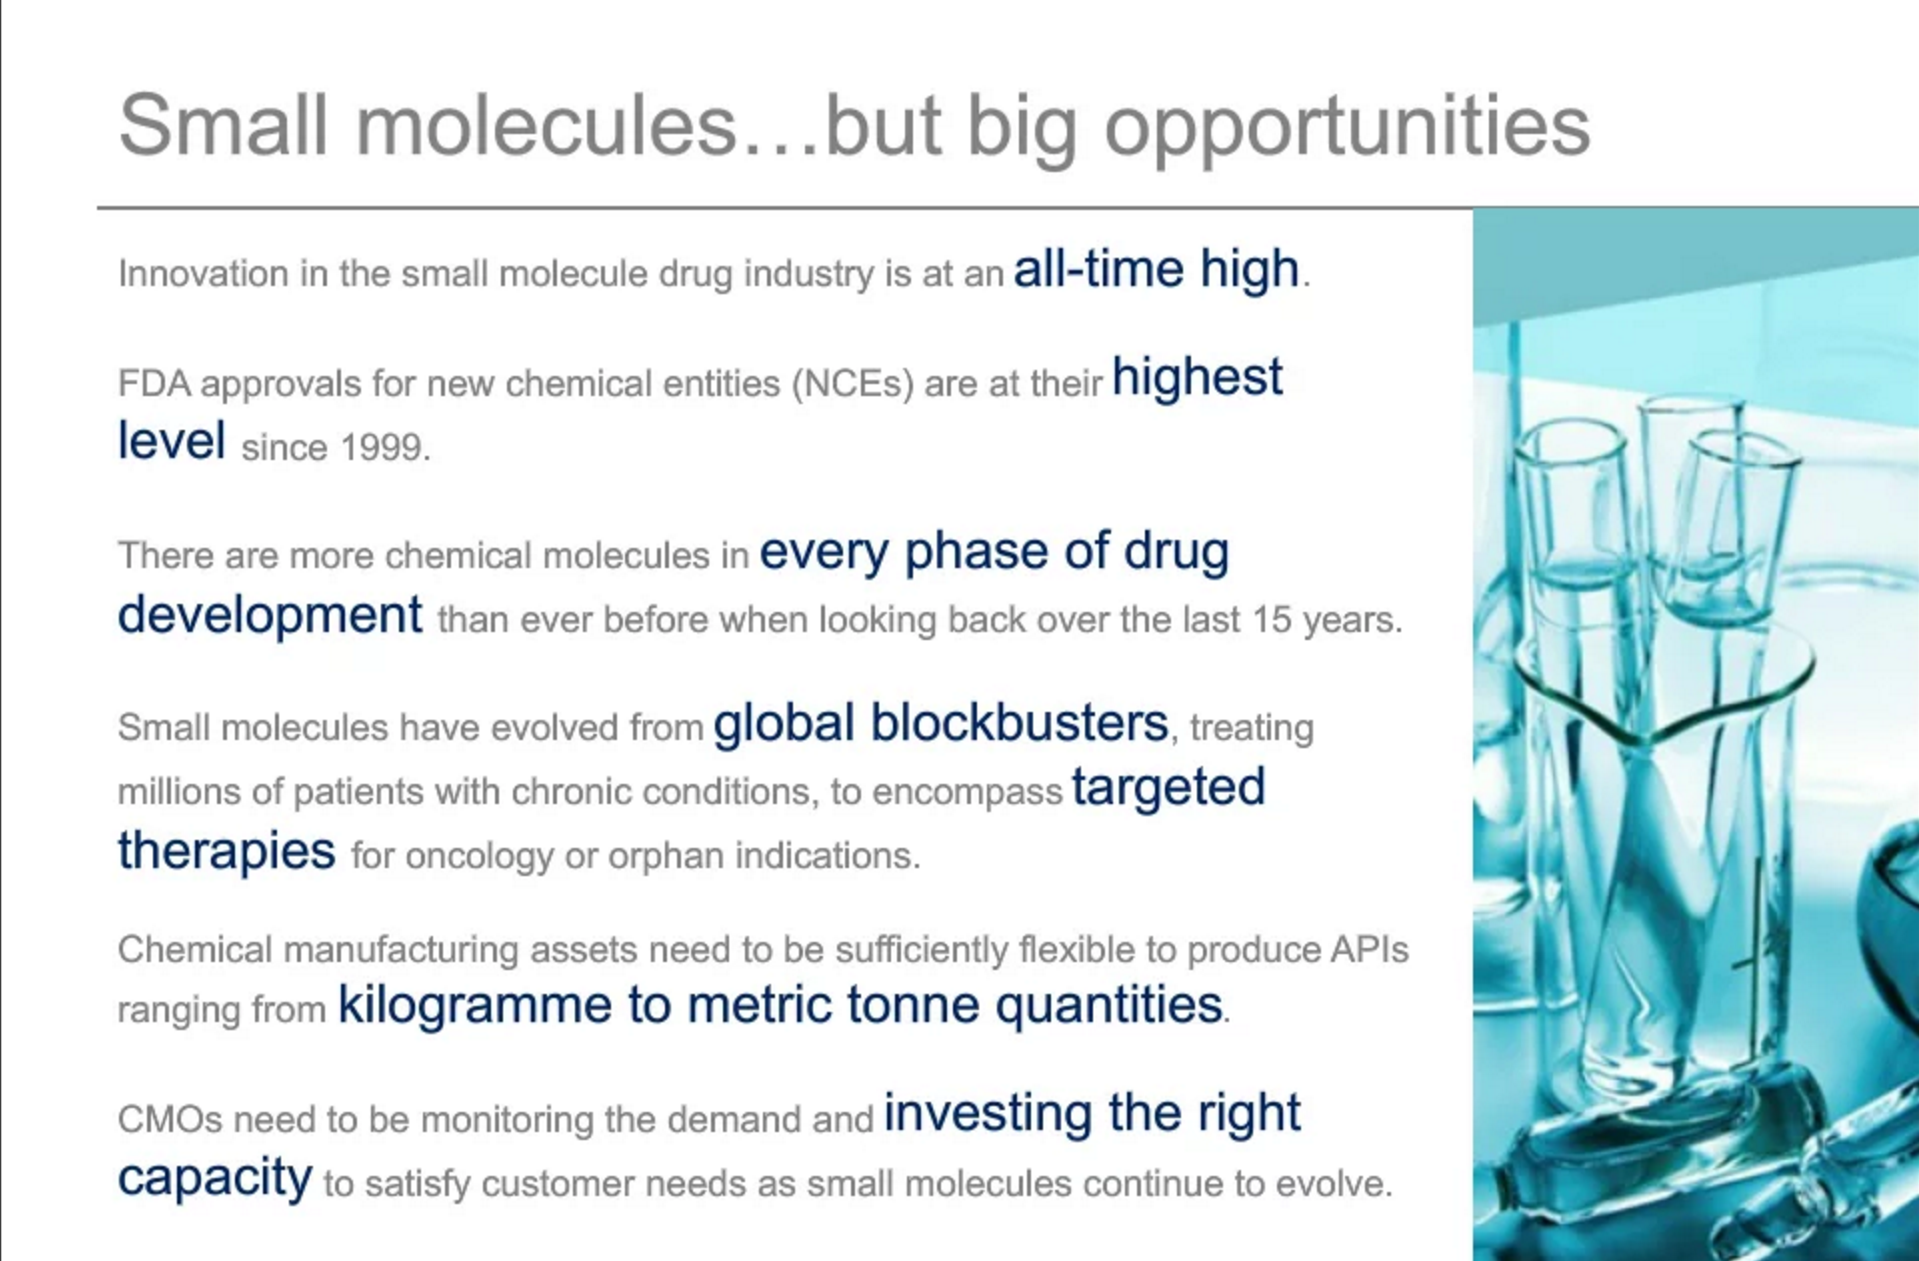 Small molecules big opportunities